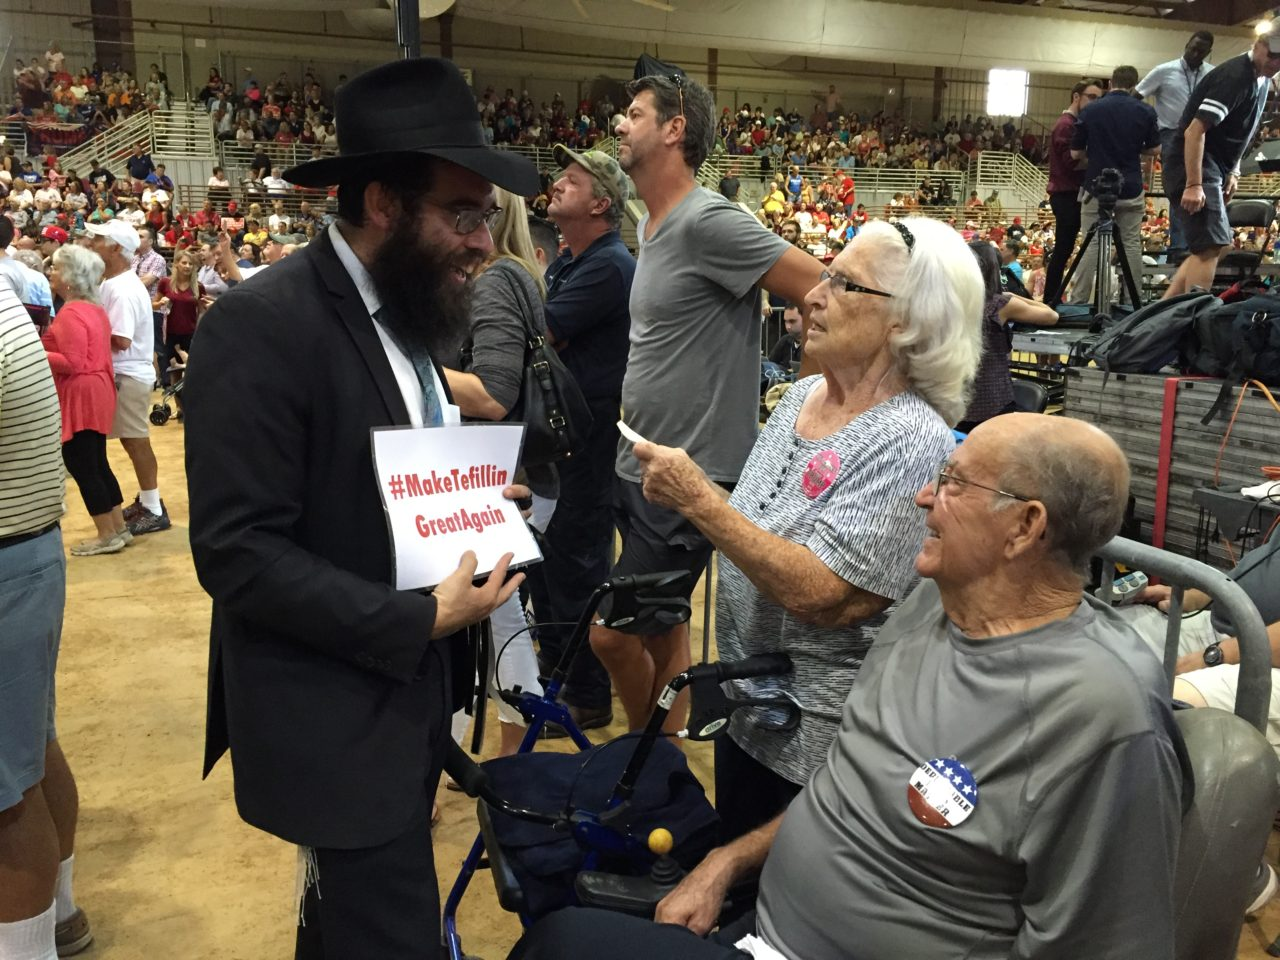 Rabbi at Trump Jacksonville Florida Rally (Joel Pollak / Breitbart News)